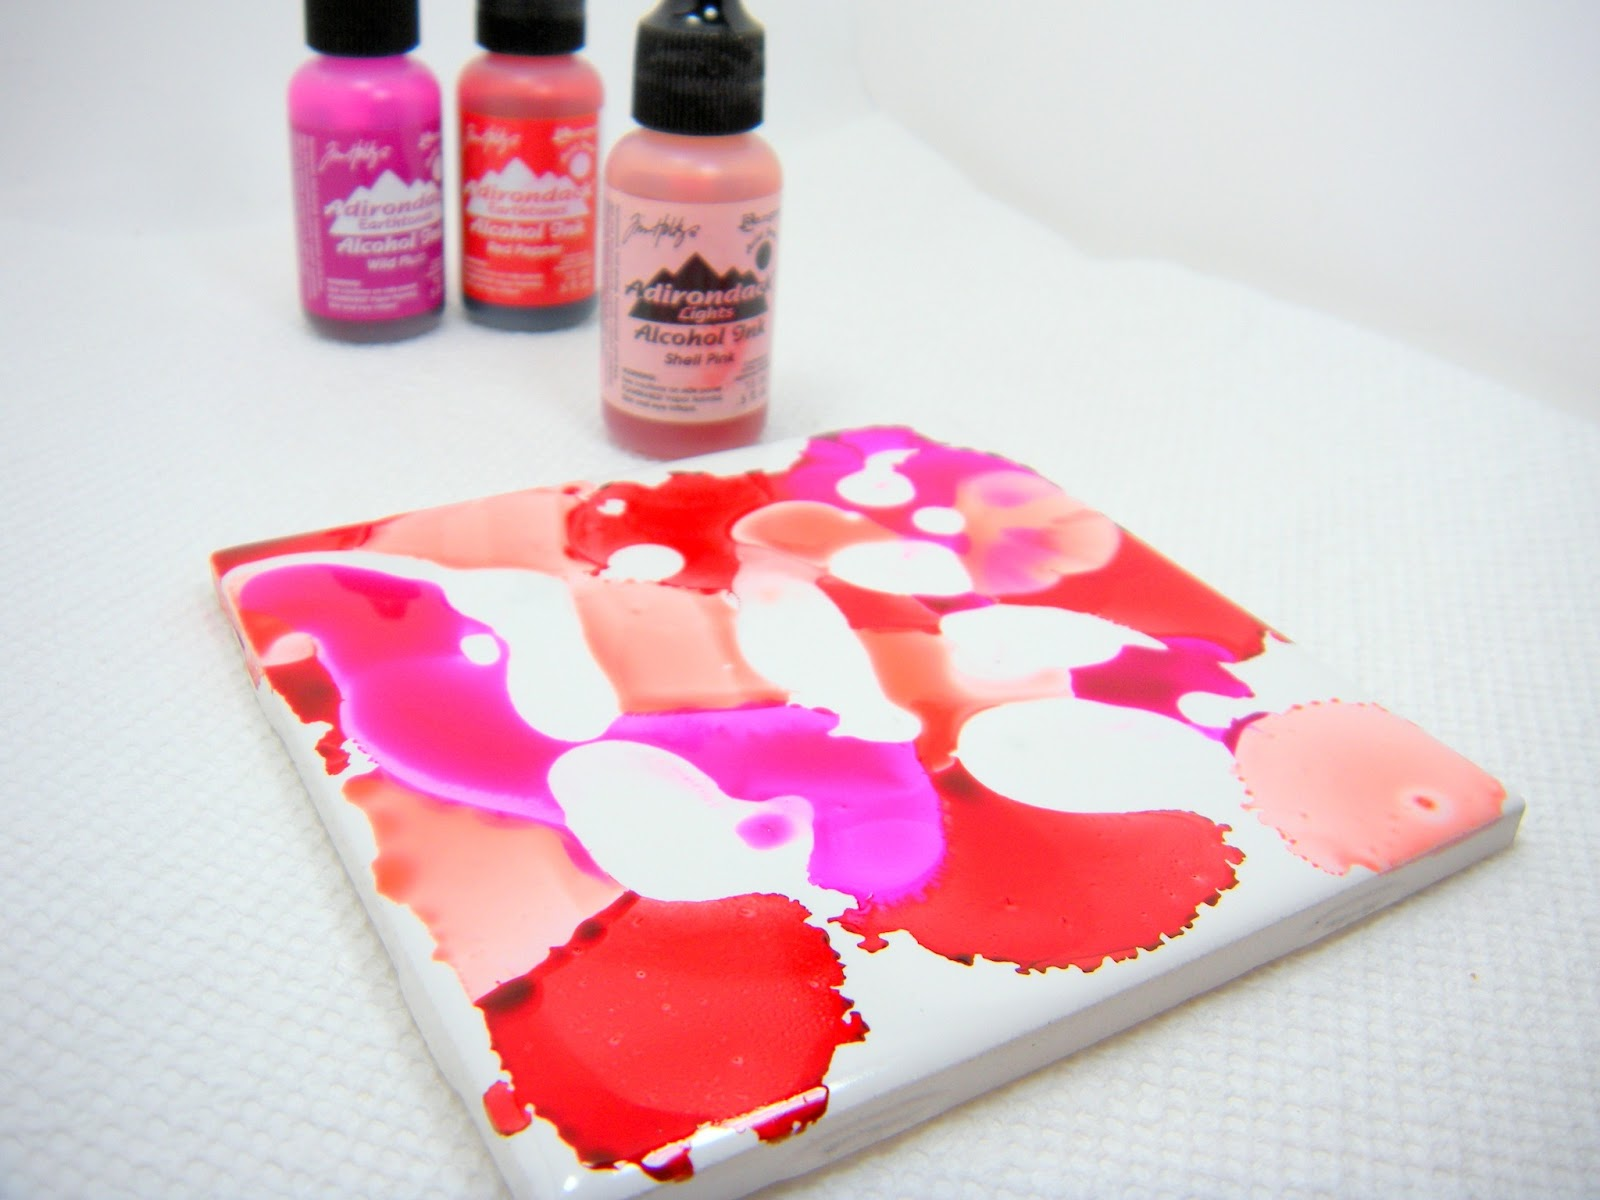 Accidentally excellent diy alcohol ink coasters 2 part tutorial once youve got the colors placed where you want them grab your felt applicators and begin lightly dabbing the tile all over try to avoid dragging the baditri Images